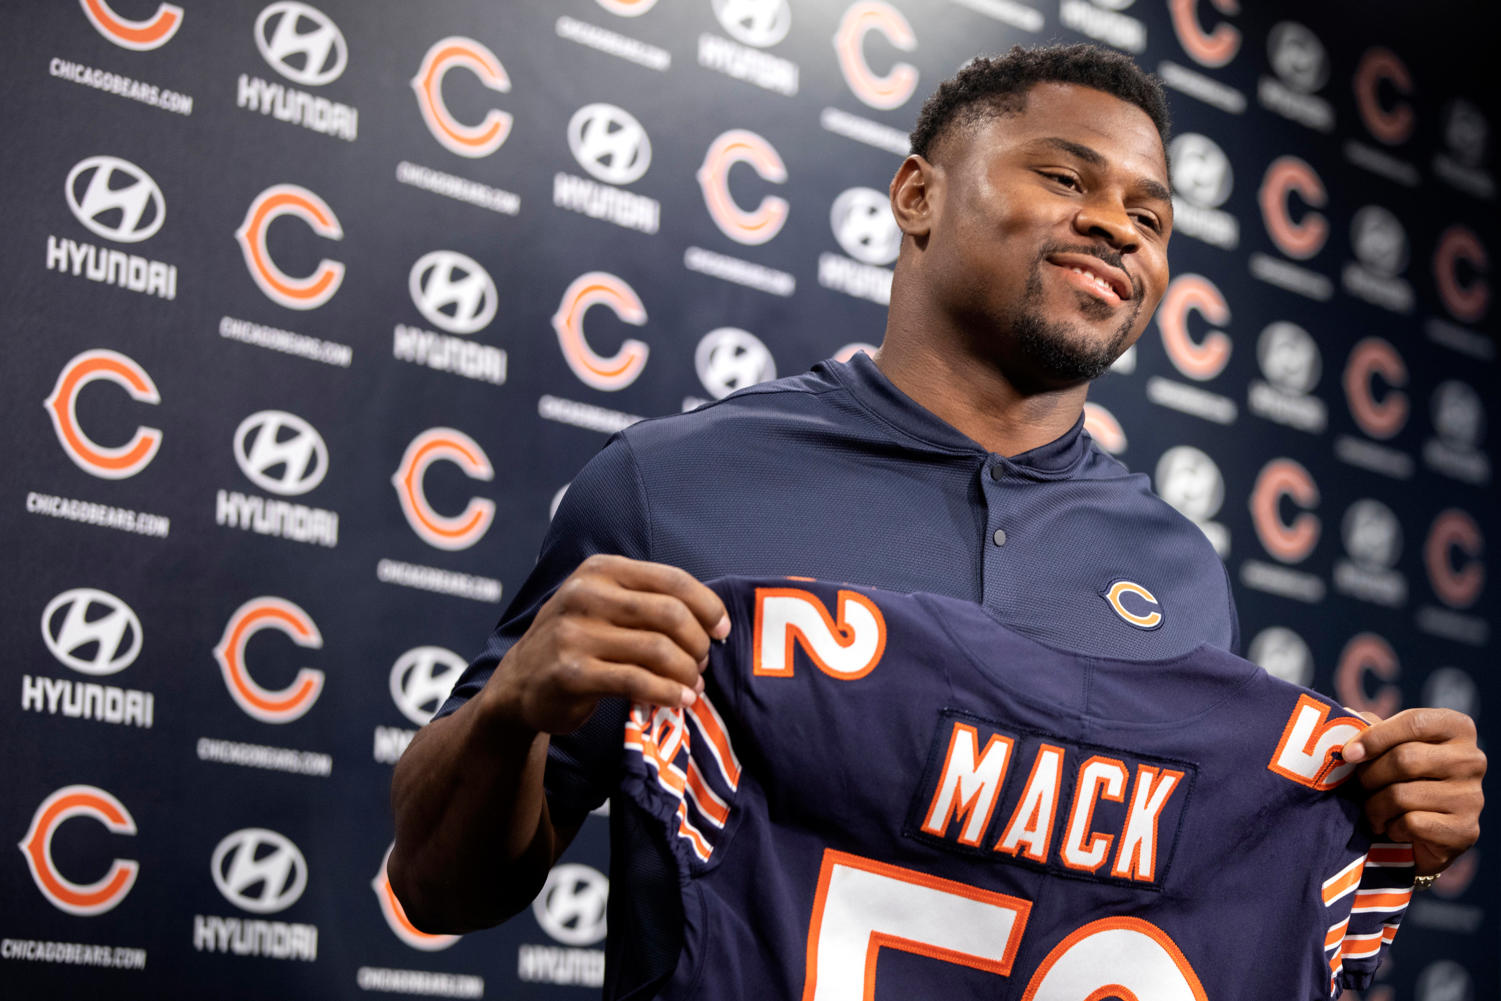 New Chicago Bears pass rusher Khalil Mack holds up a jersey during a press conference on Sunday, Sept. 2, at the PNC Center at Halas Hall in Lake Forest, Ill.  (Erin Hooley/Chicago Tribune/TNS)